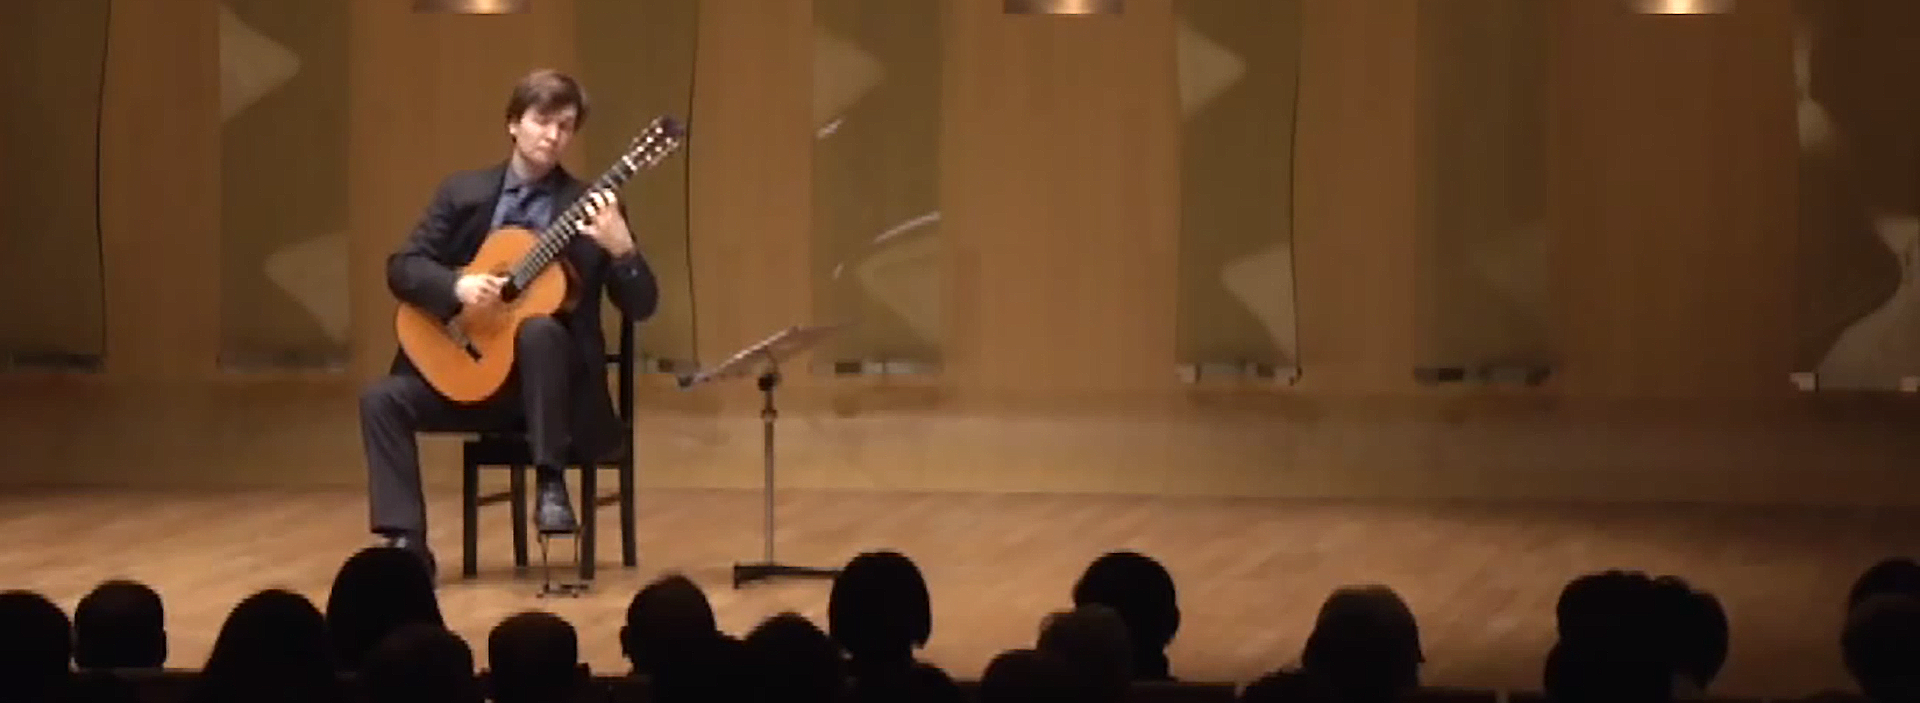 Cameron O'Connor performing in the finals of the Tokyo Guitar Competition.